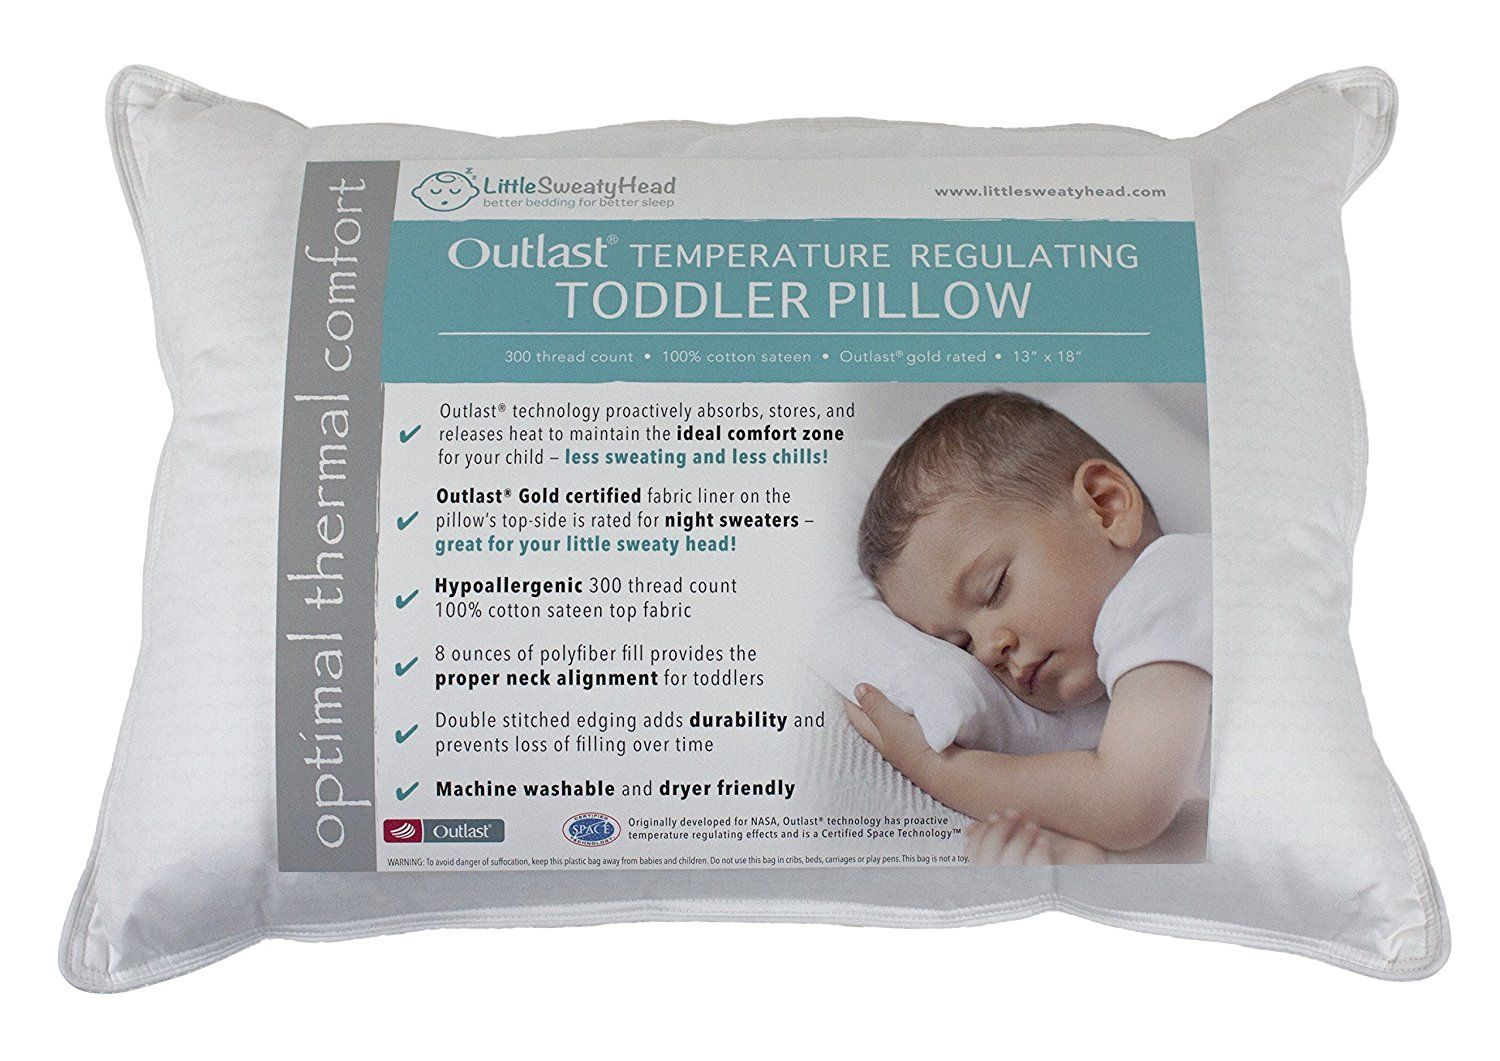 1d3d994495 Toddler Pillow for Hot or Sweaty Sleepers - 13 x 18